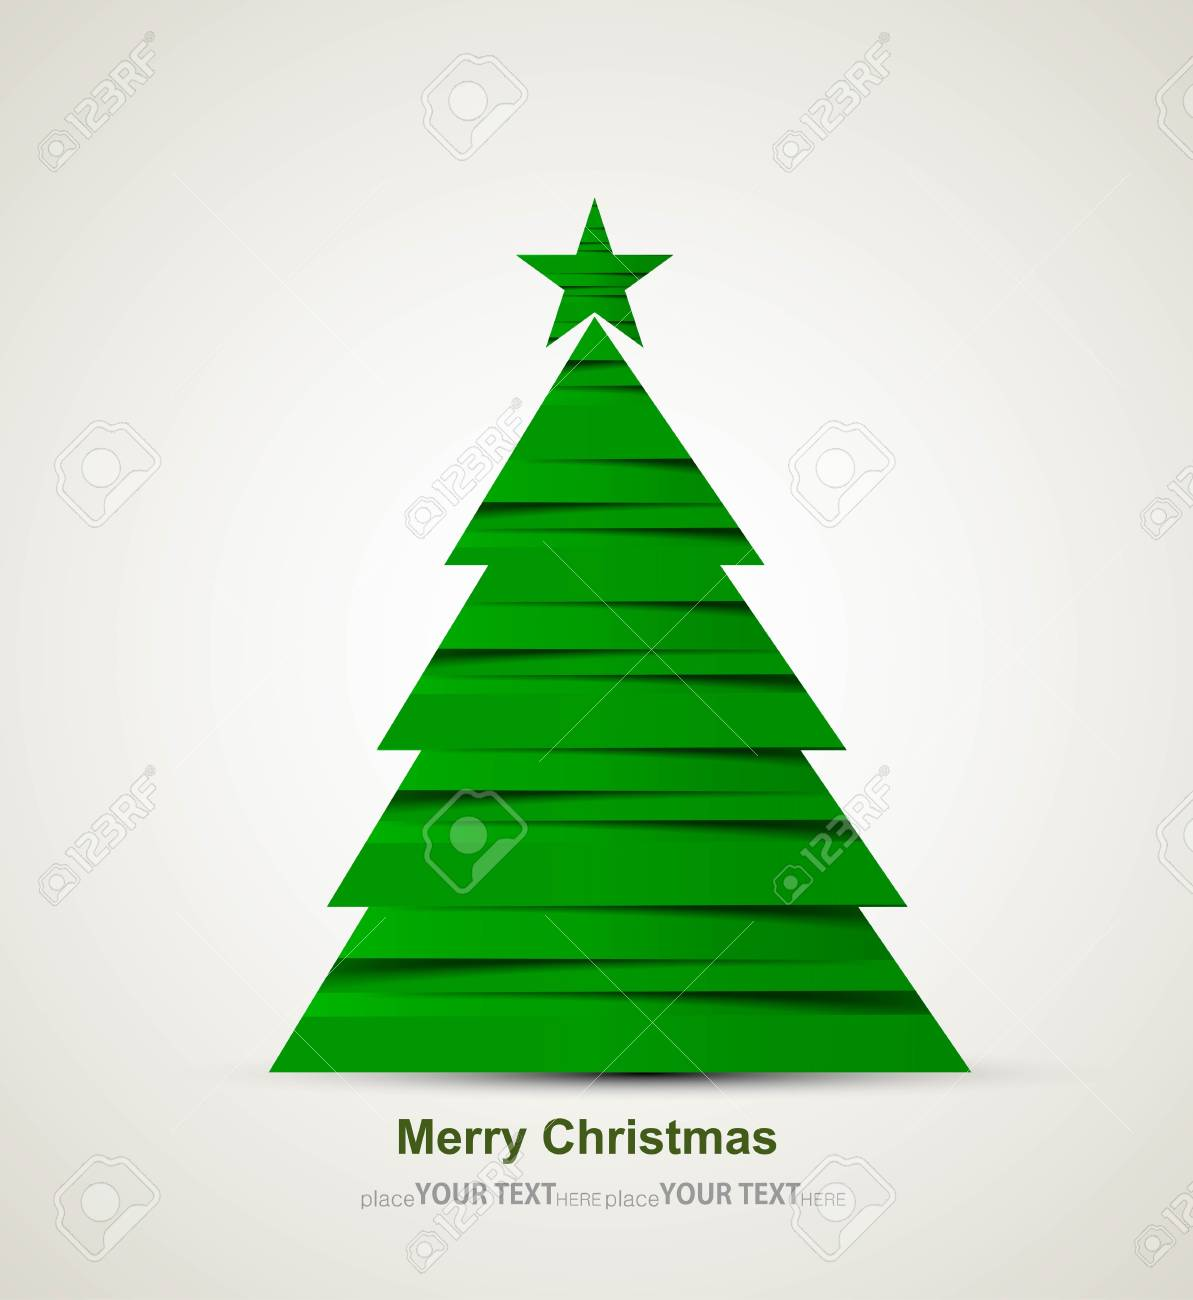 merry christmas stylish green tree colorful whit background Stock Vector - 17790333